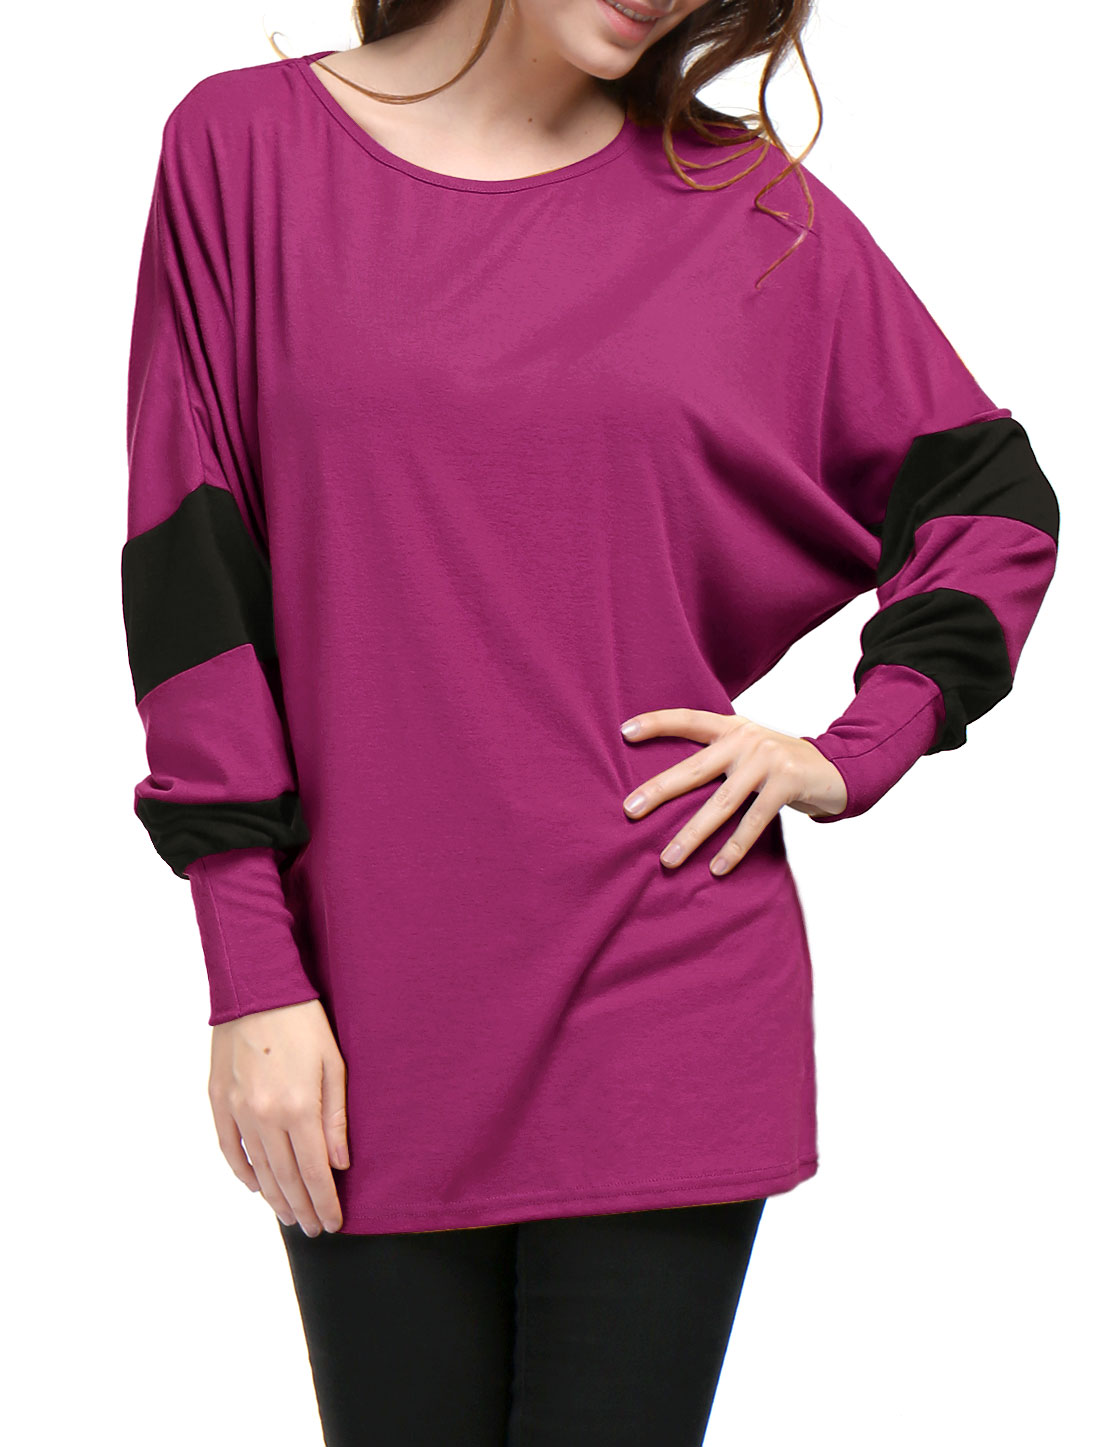 Women Color Block Batwing Sleeves Loose Tunic Top Purple XL